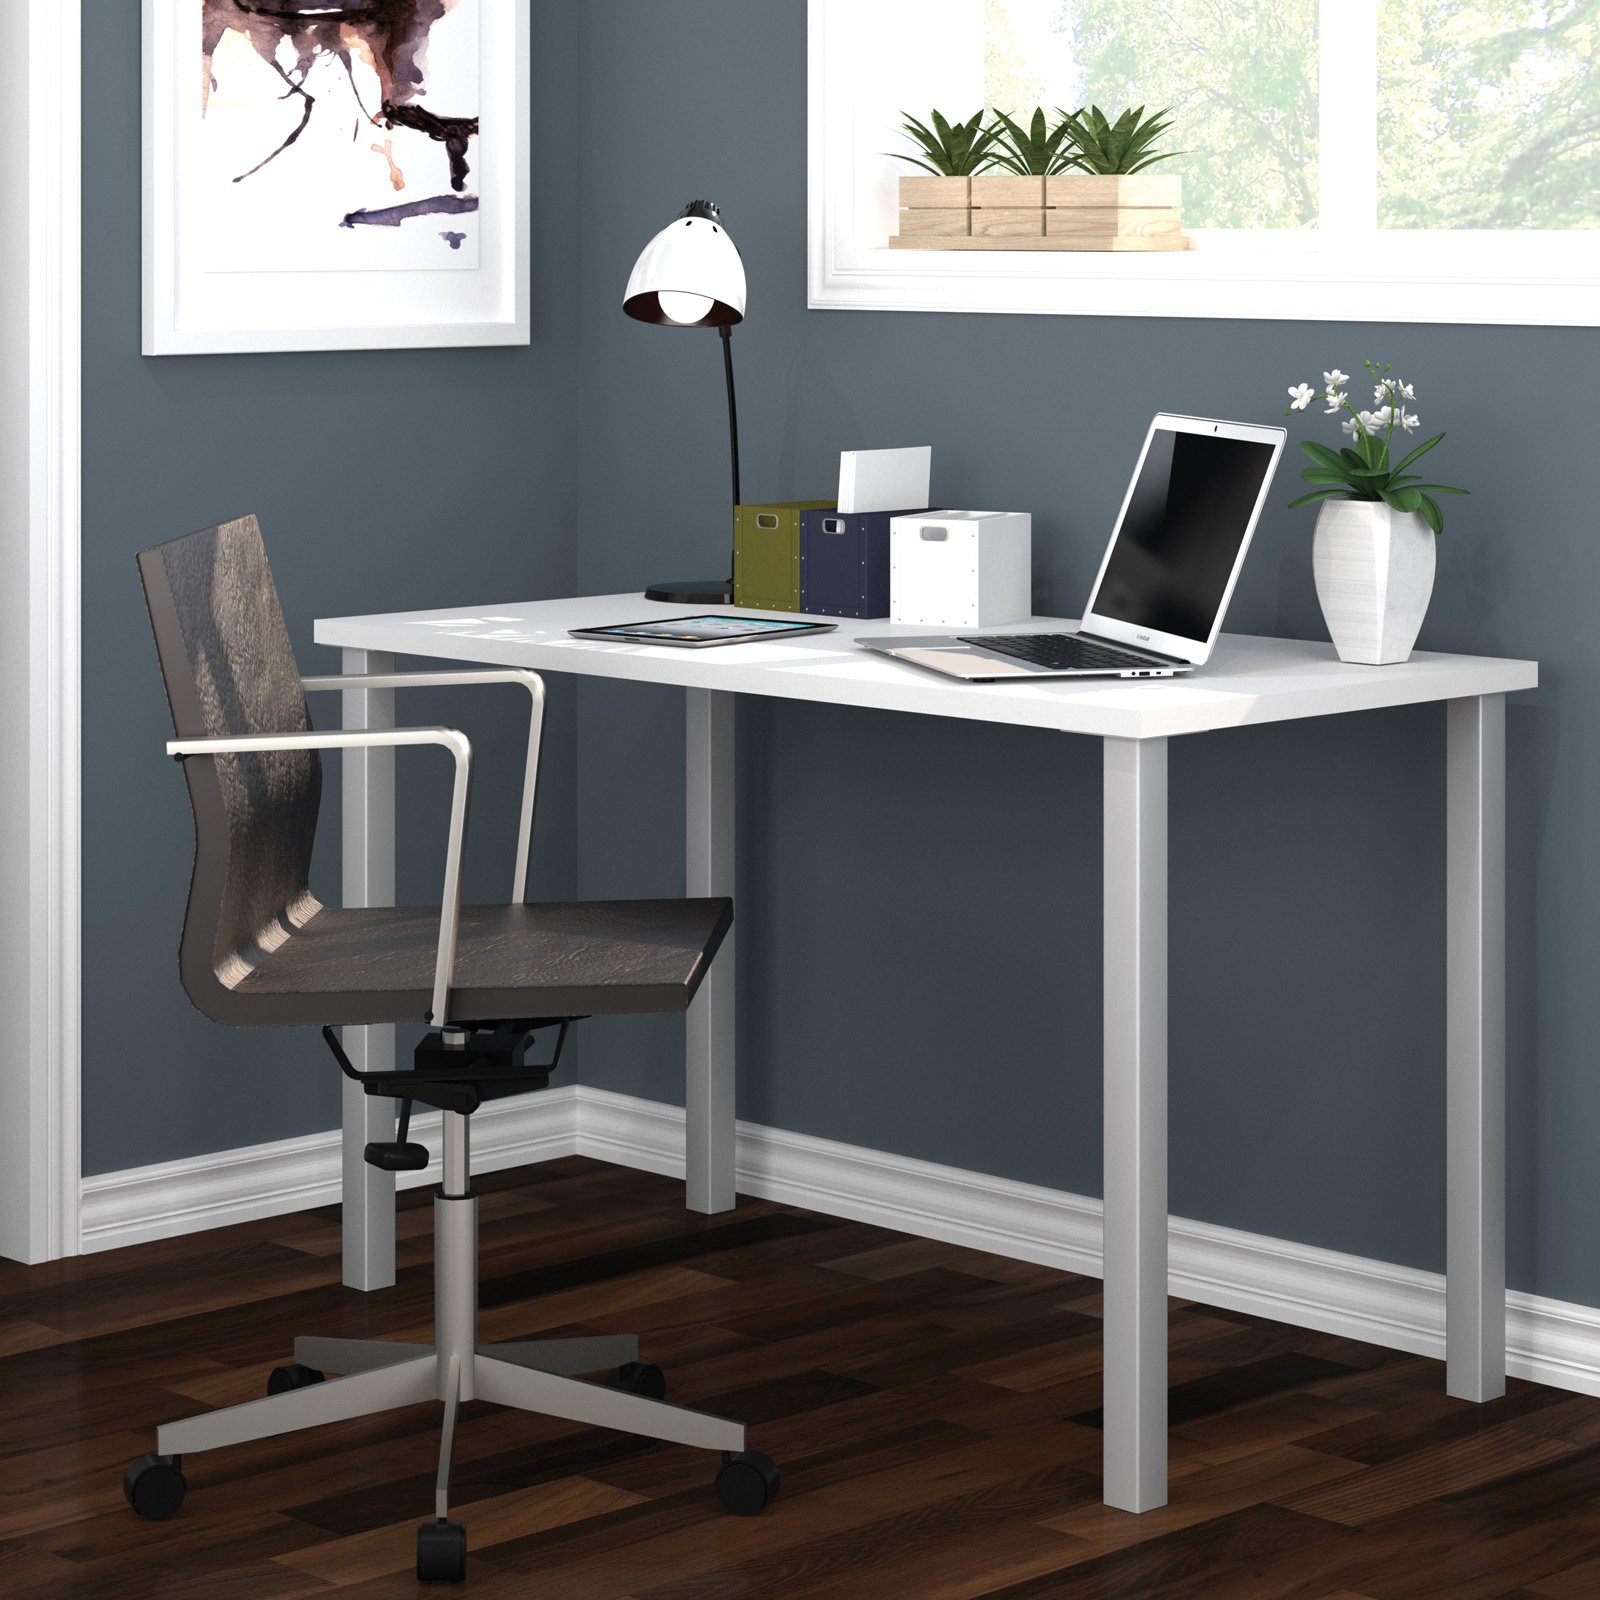 "Bestar 24"" x 48"" Table with square metal legs in White"